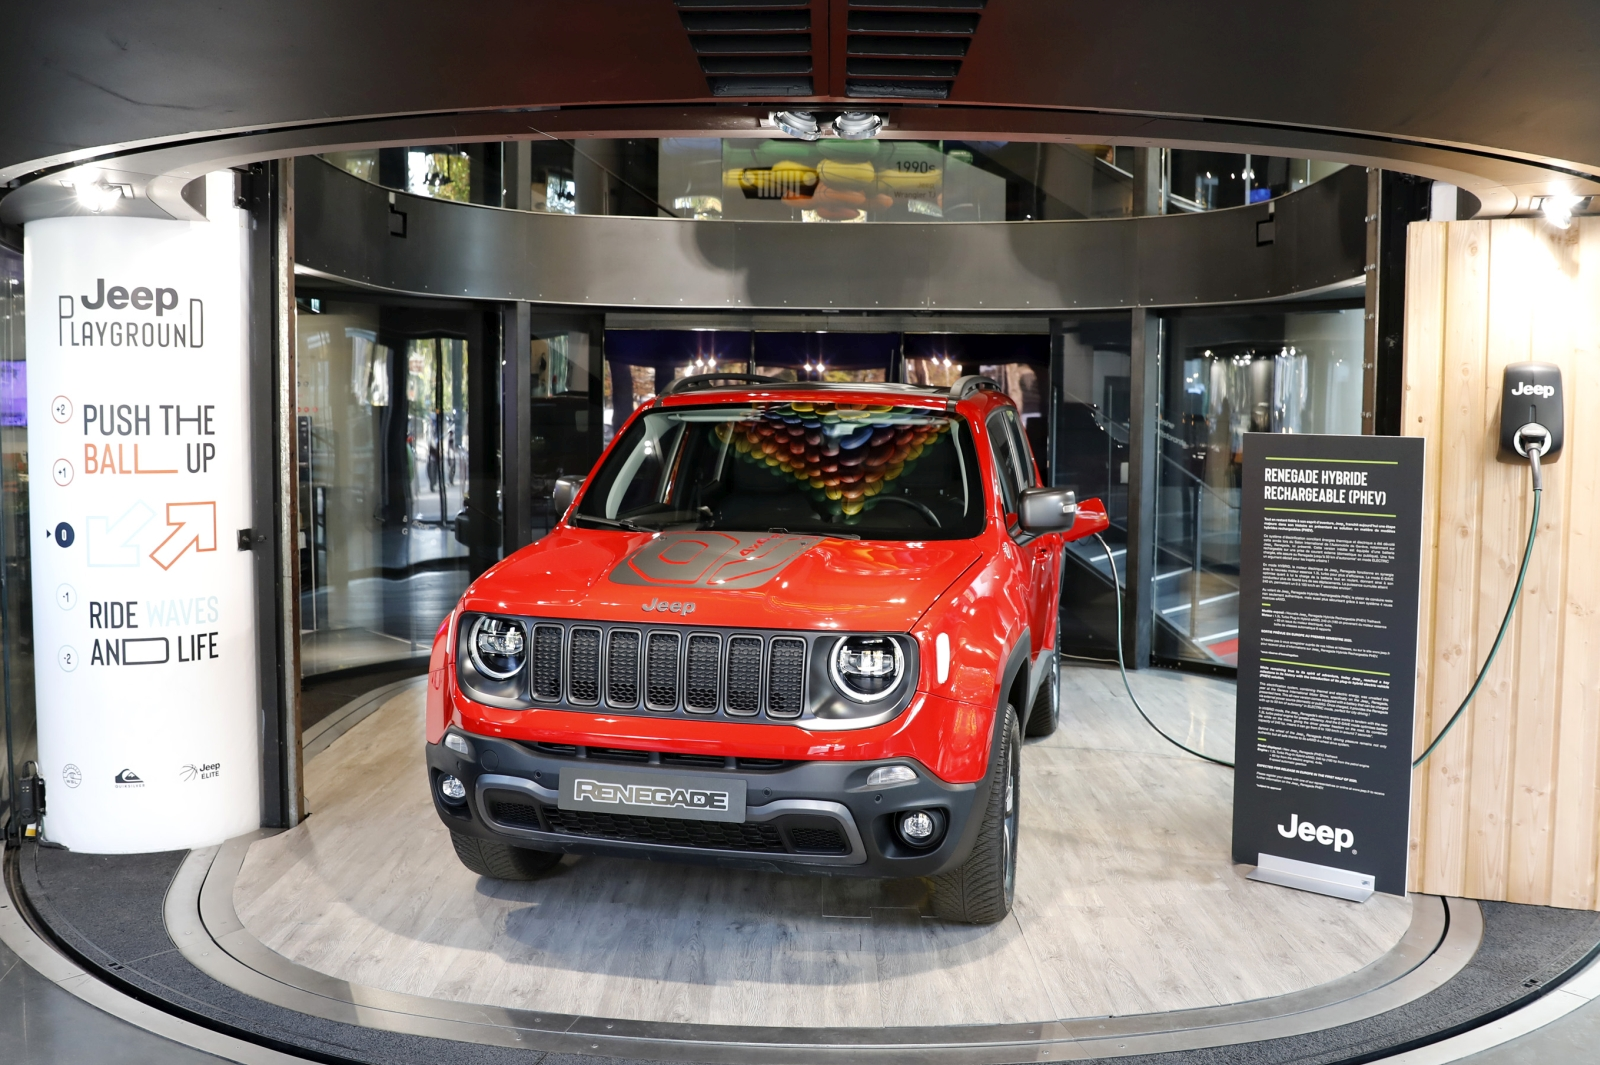 Jeep Renegade Plug-in Hybrid